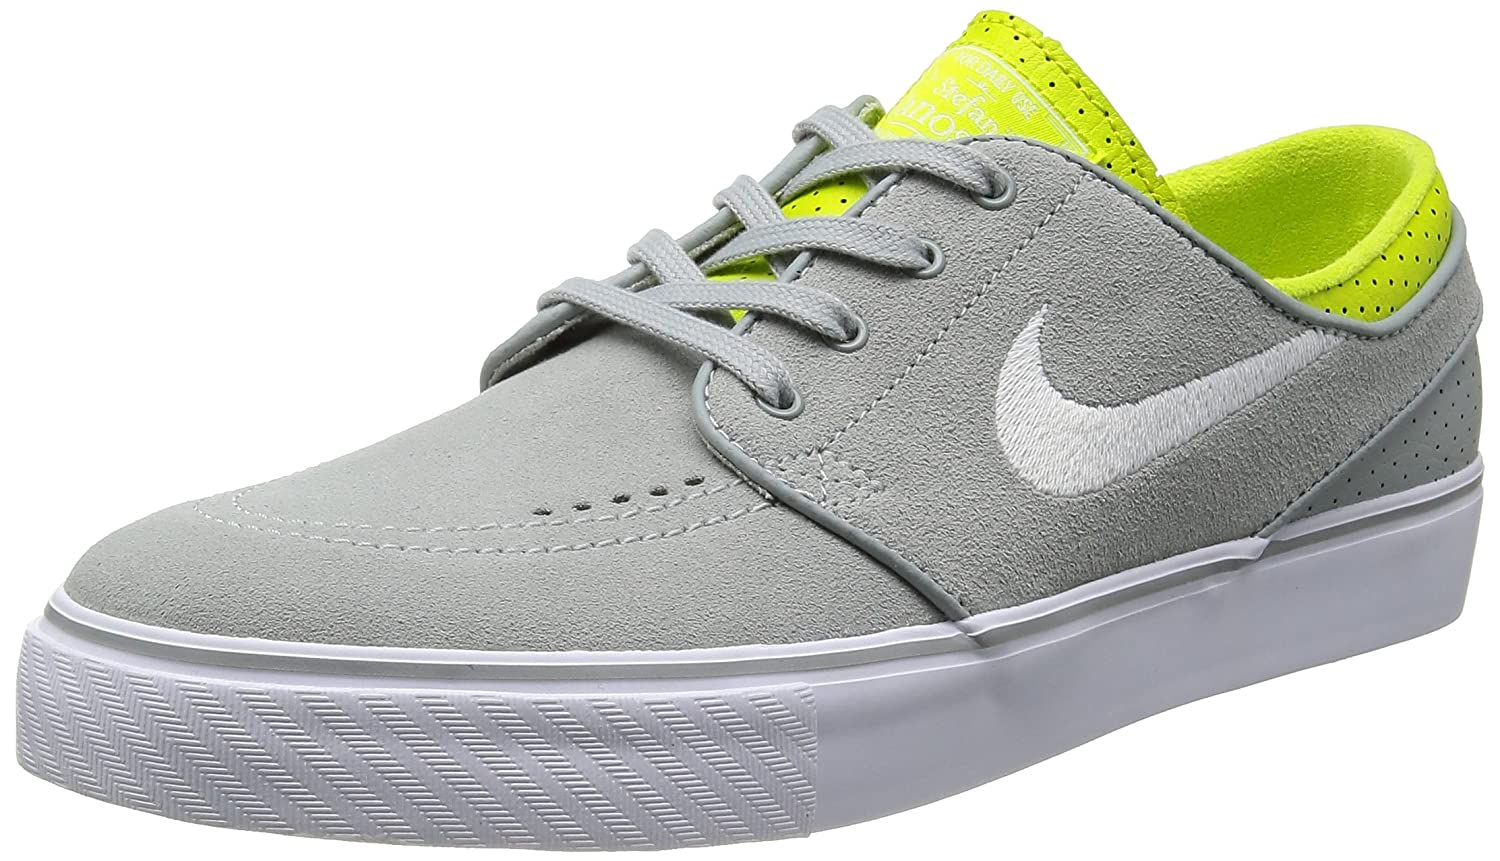 size 40 5d873 87adc Nike SB Zoom Stefan Janoski Mens Skate Trainers 333824 025 Sneakers Shoes  (UK 8. 5 US 9. 5 EU 43, Base Grey White Venom Green)  Buy Online at Low  Prices in ...